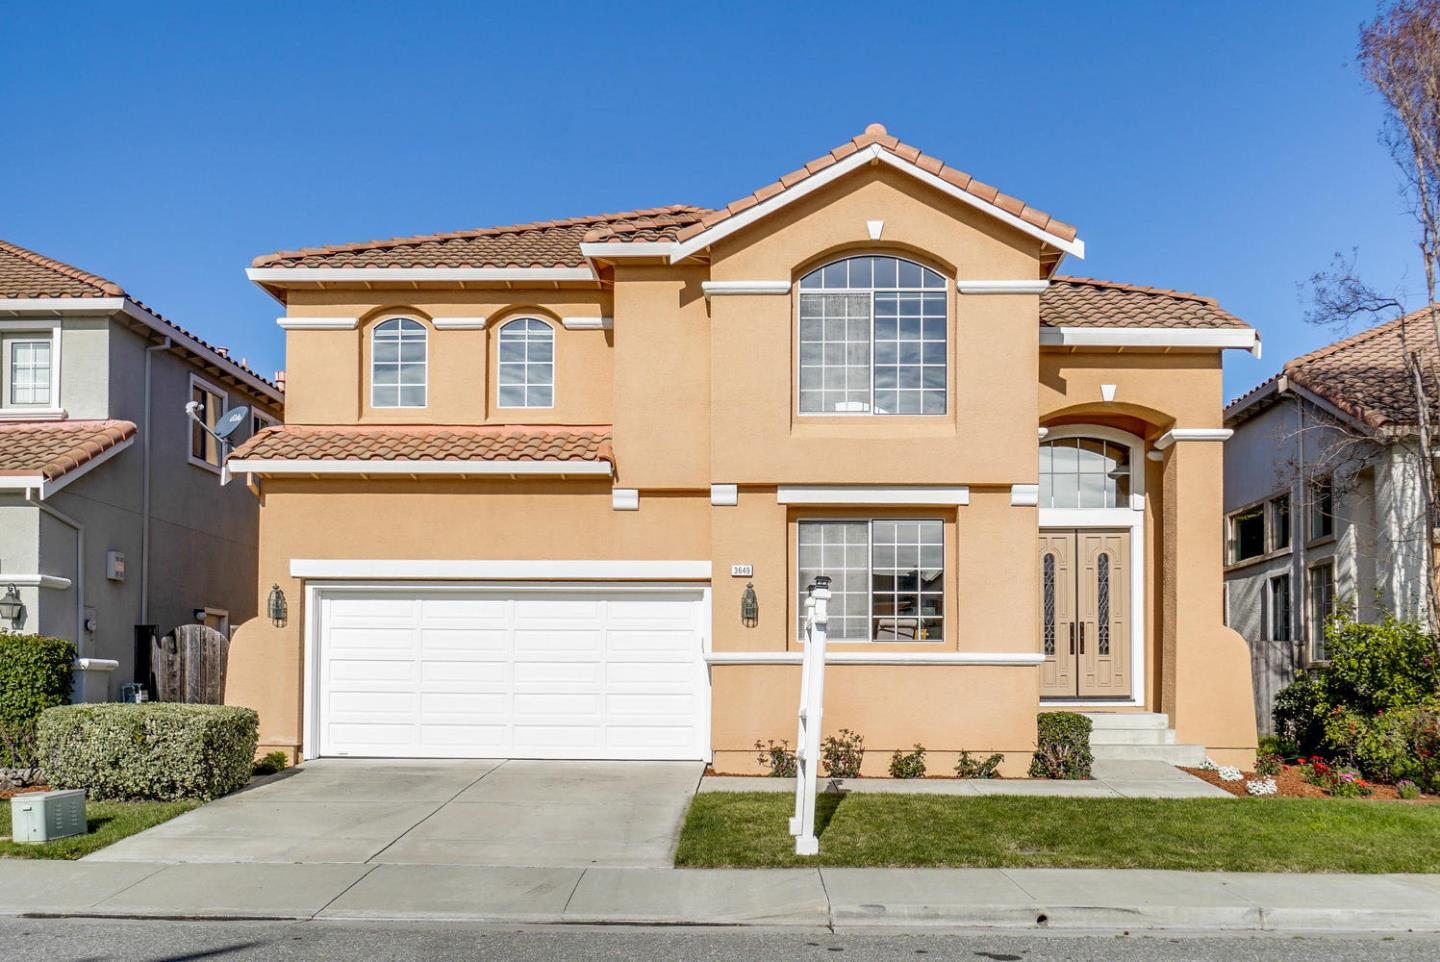 Detail Gallery Image 1 of 1 For 3649 Vireo Ave, Santa Clara, CA 95051 - 4 Beds | 2/1 Baths